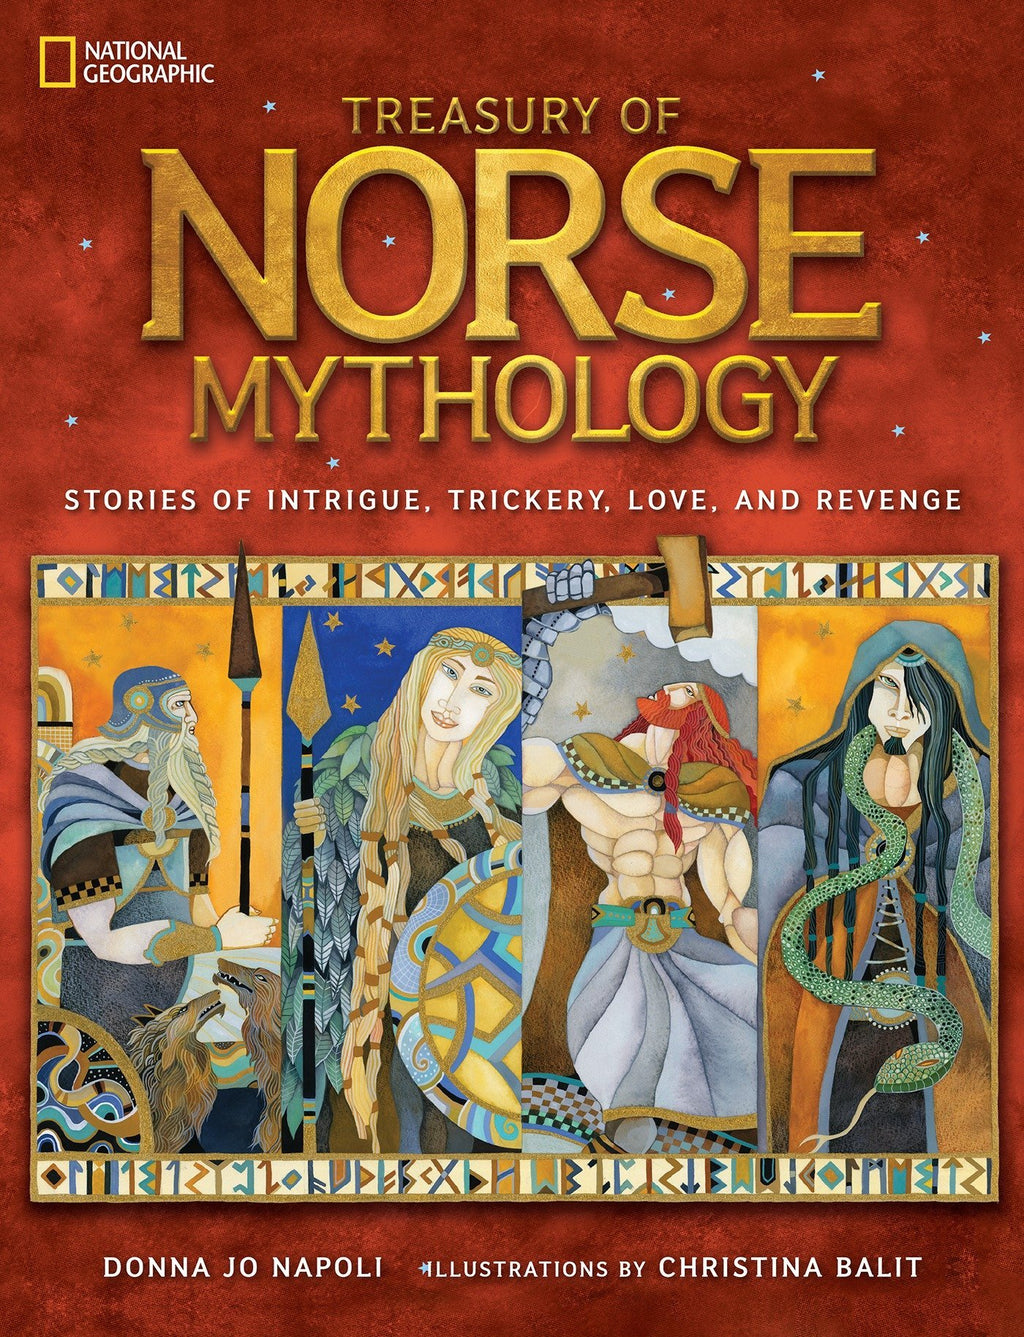 Treasury of Norse Mythology by Donna Jo Napoli & Christina Balit